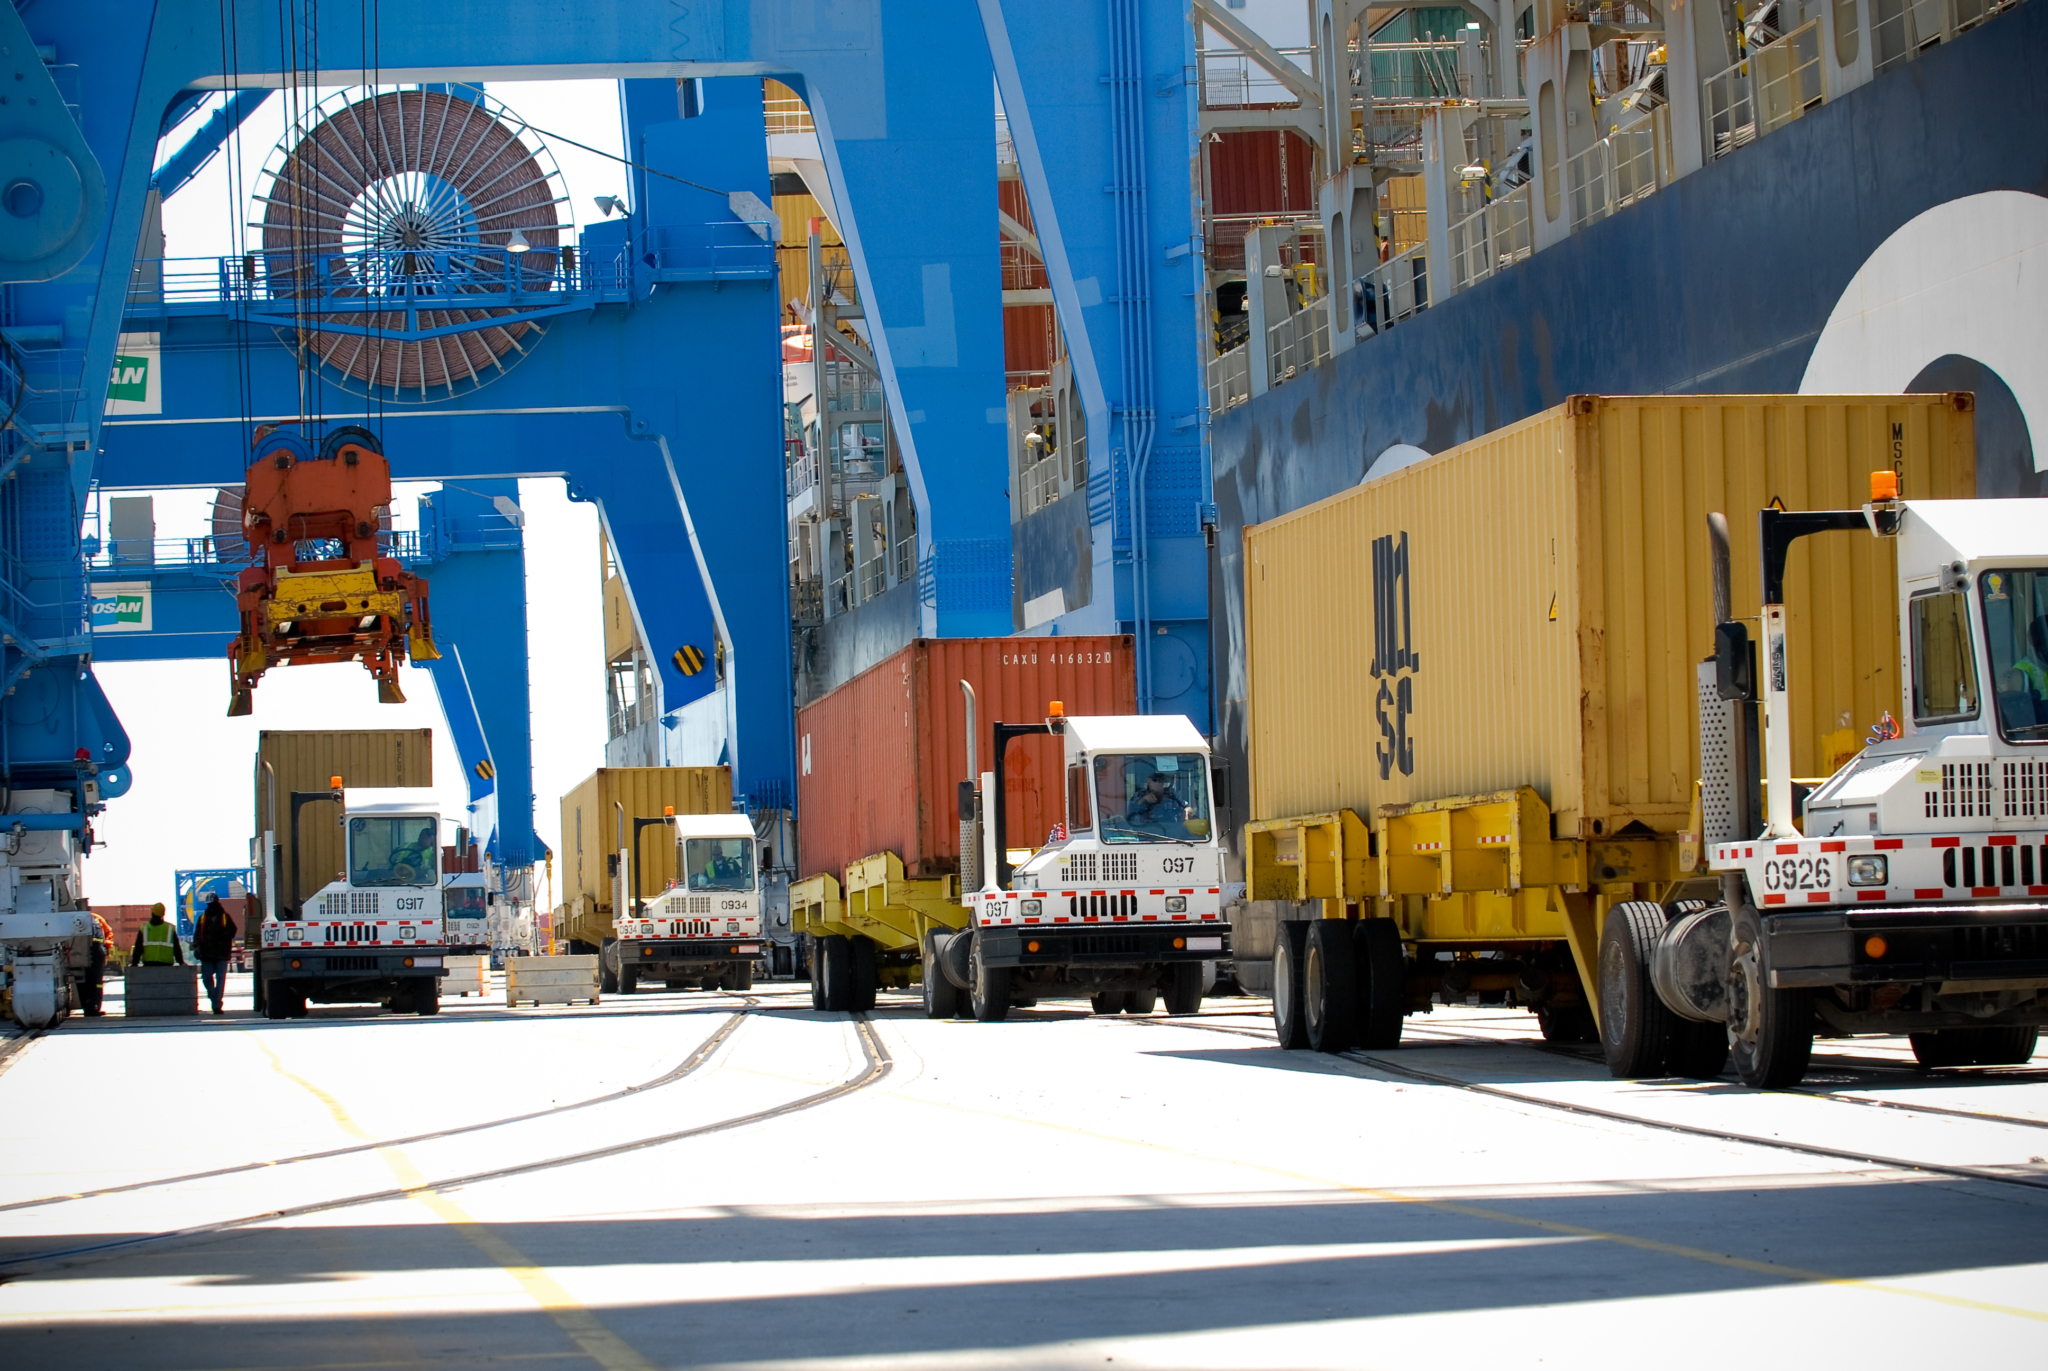 Gantry Cranes Loading Containers Onto Drayage Trucks